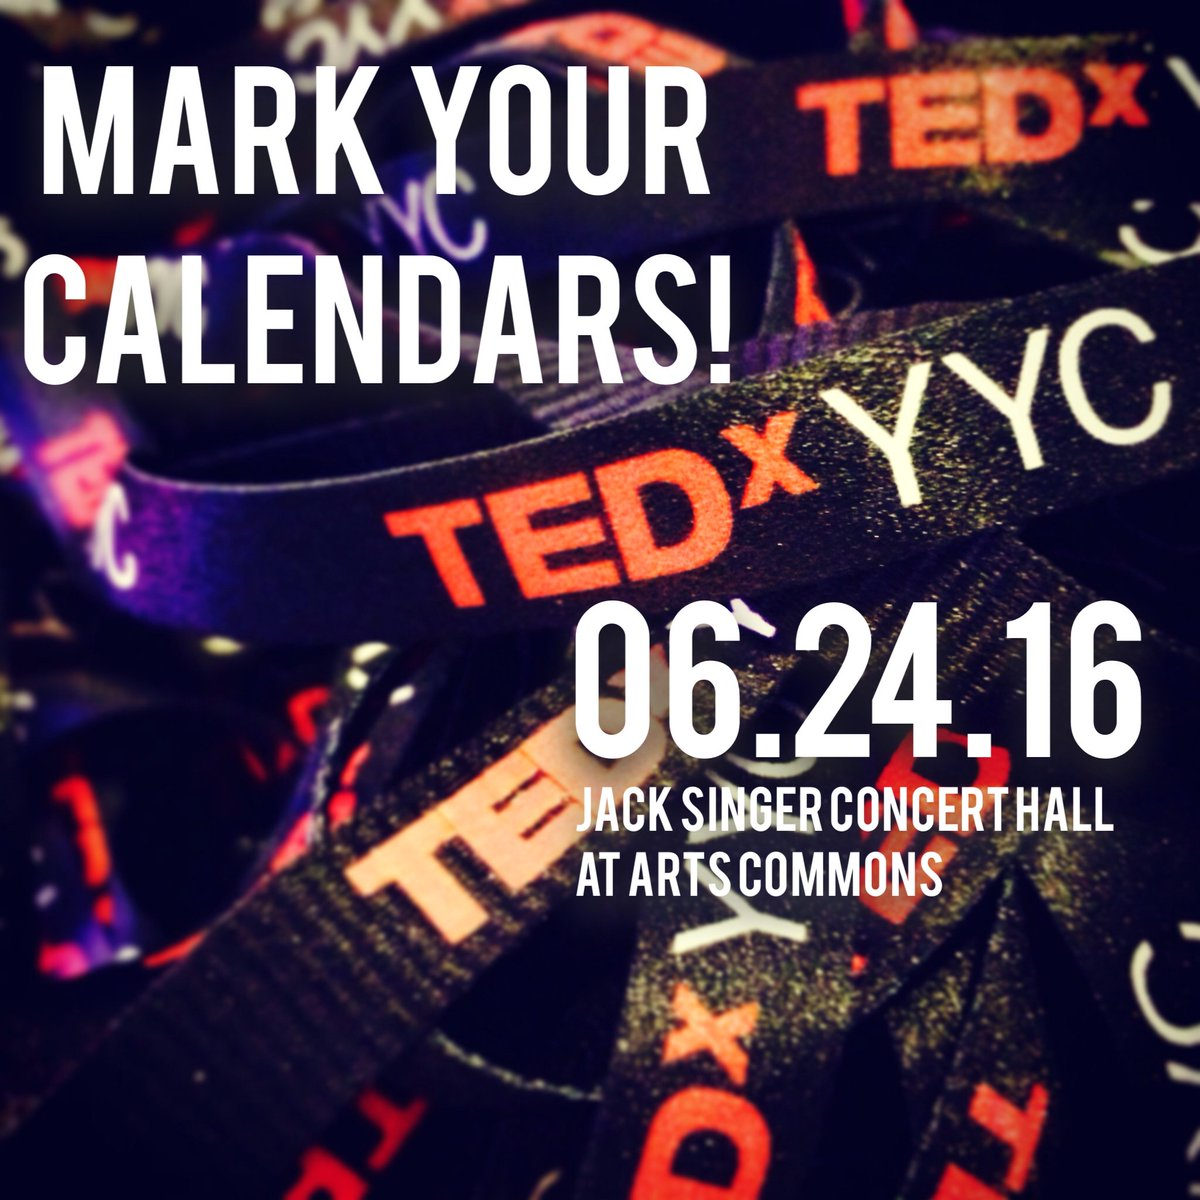 WANTED: Big Thinkers, Action Takers, and Product Makers. #TEDxYYC is returning to @yycarts on June 24, 2016. https://t.co/6LJPSlgxMV